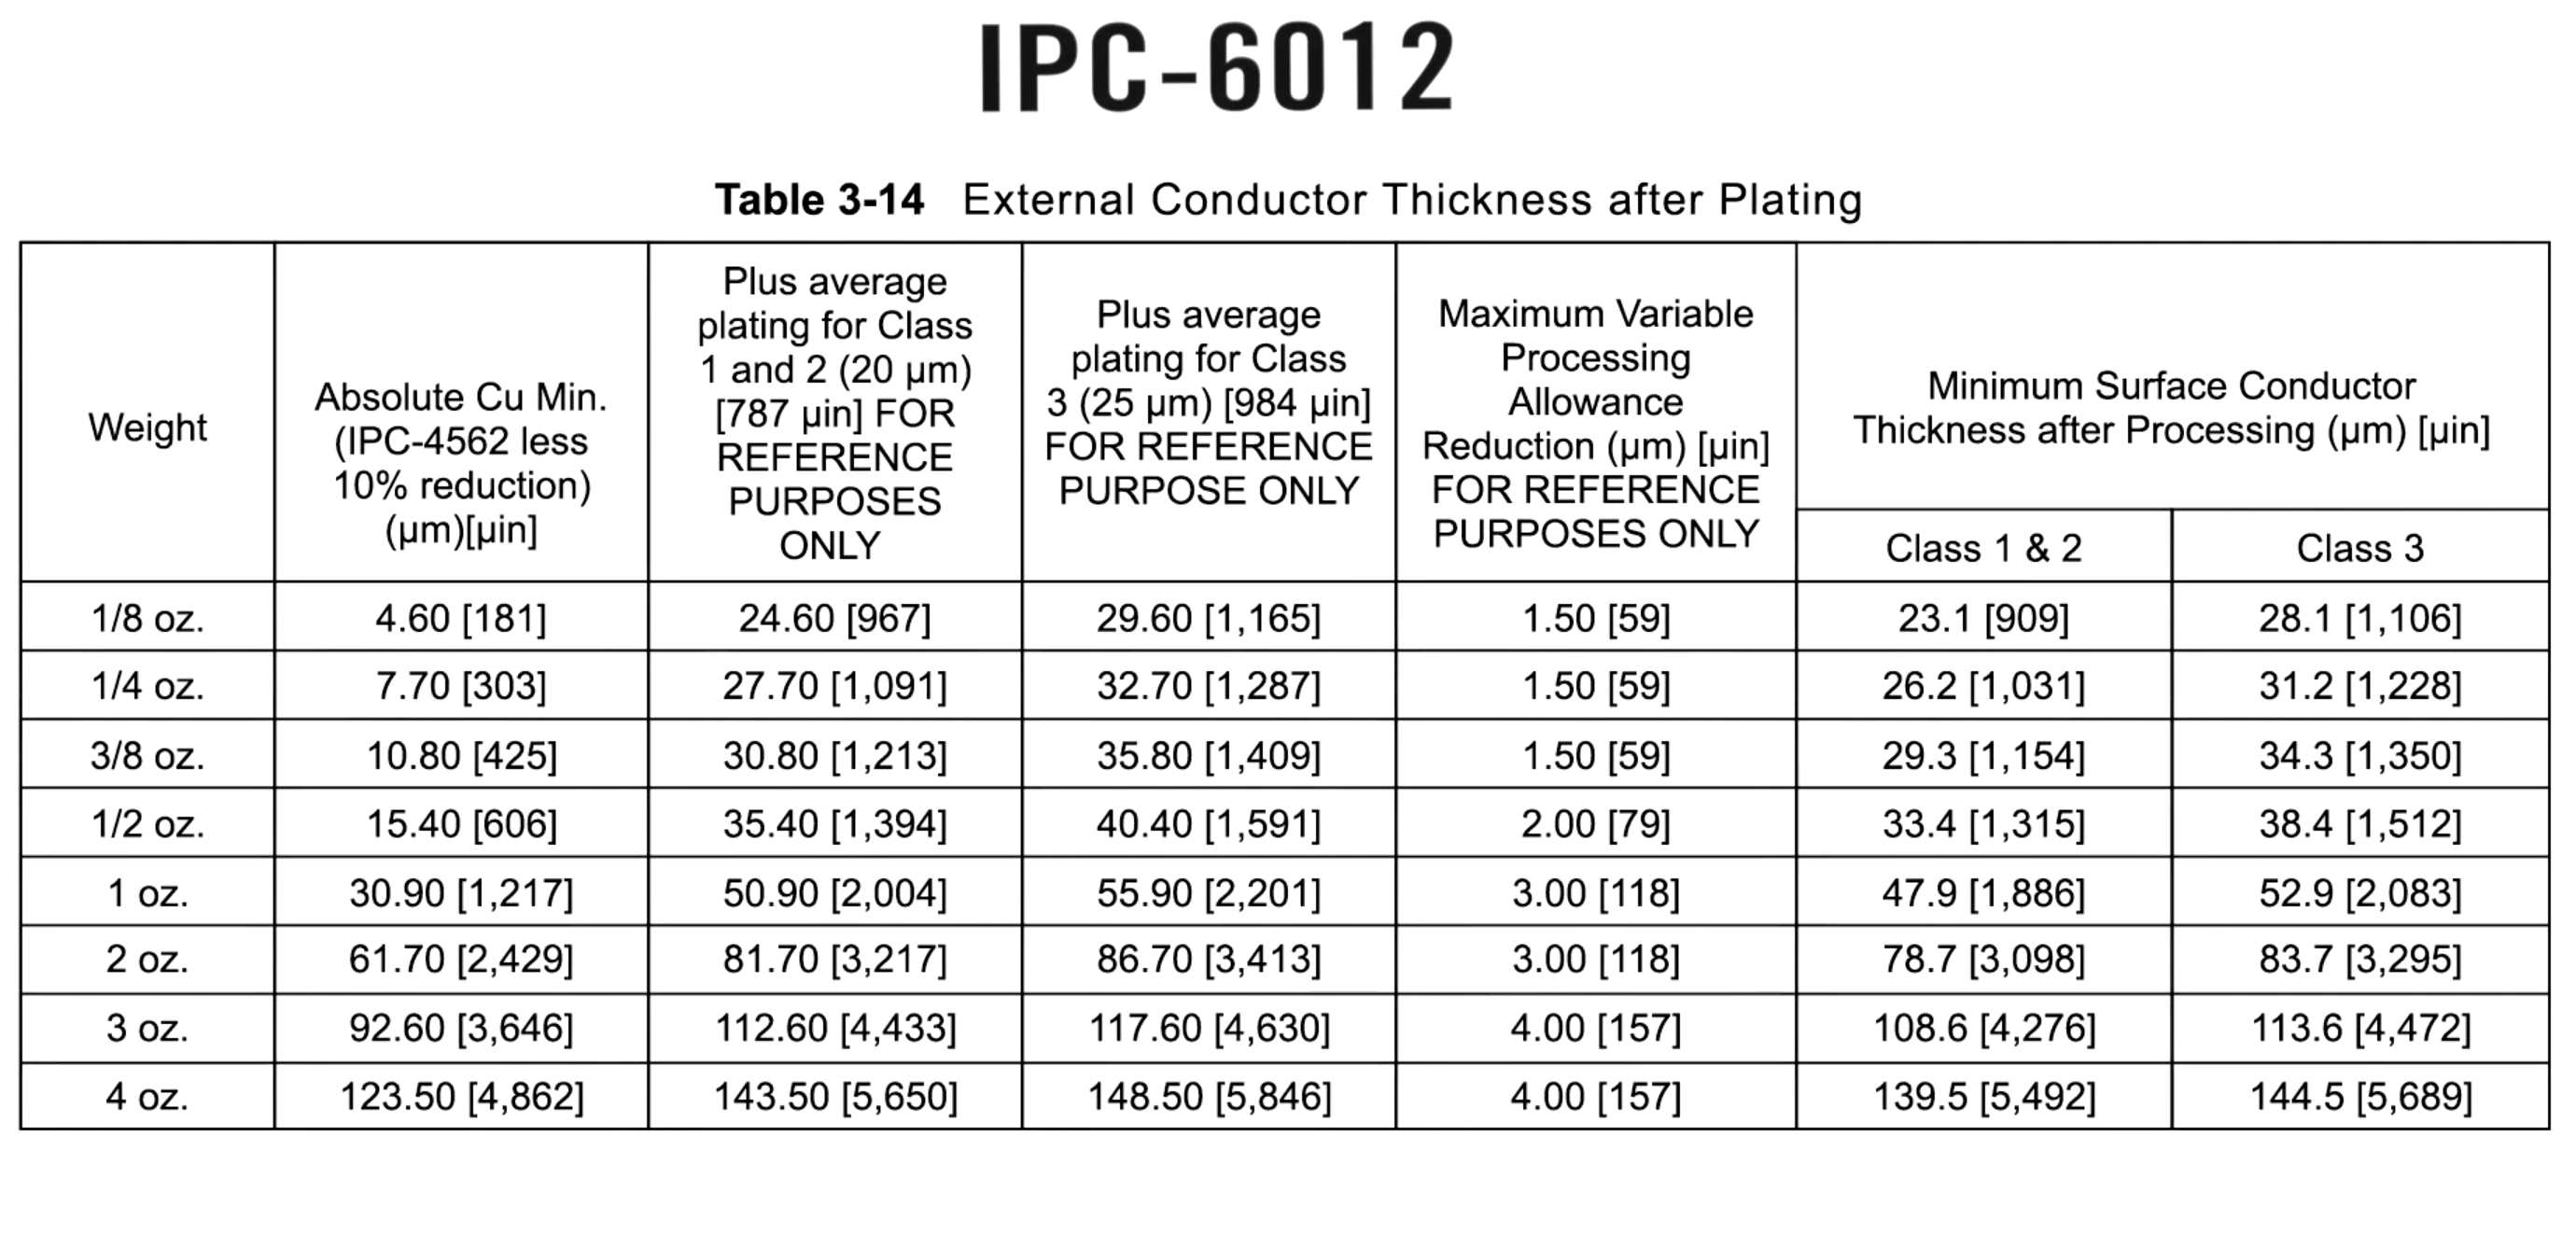 IPC 6012 - Conductor Thickness after Plating